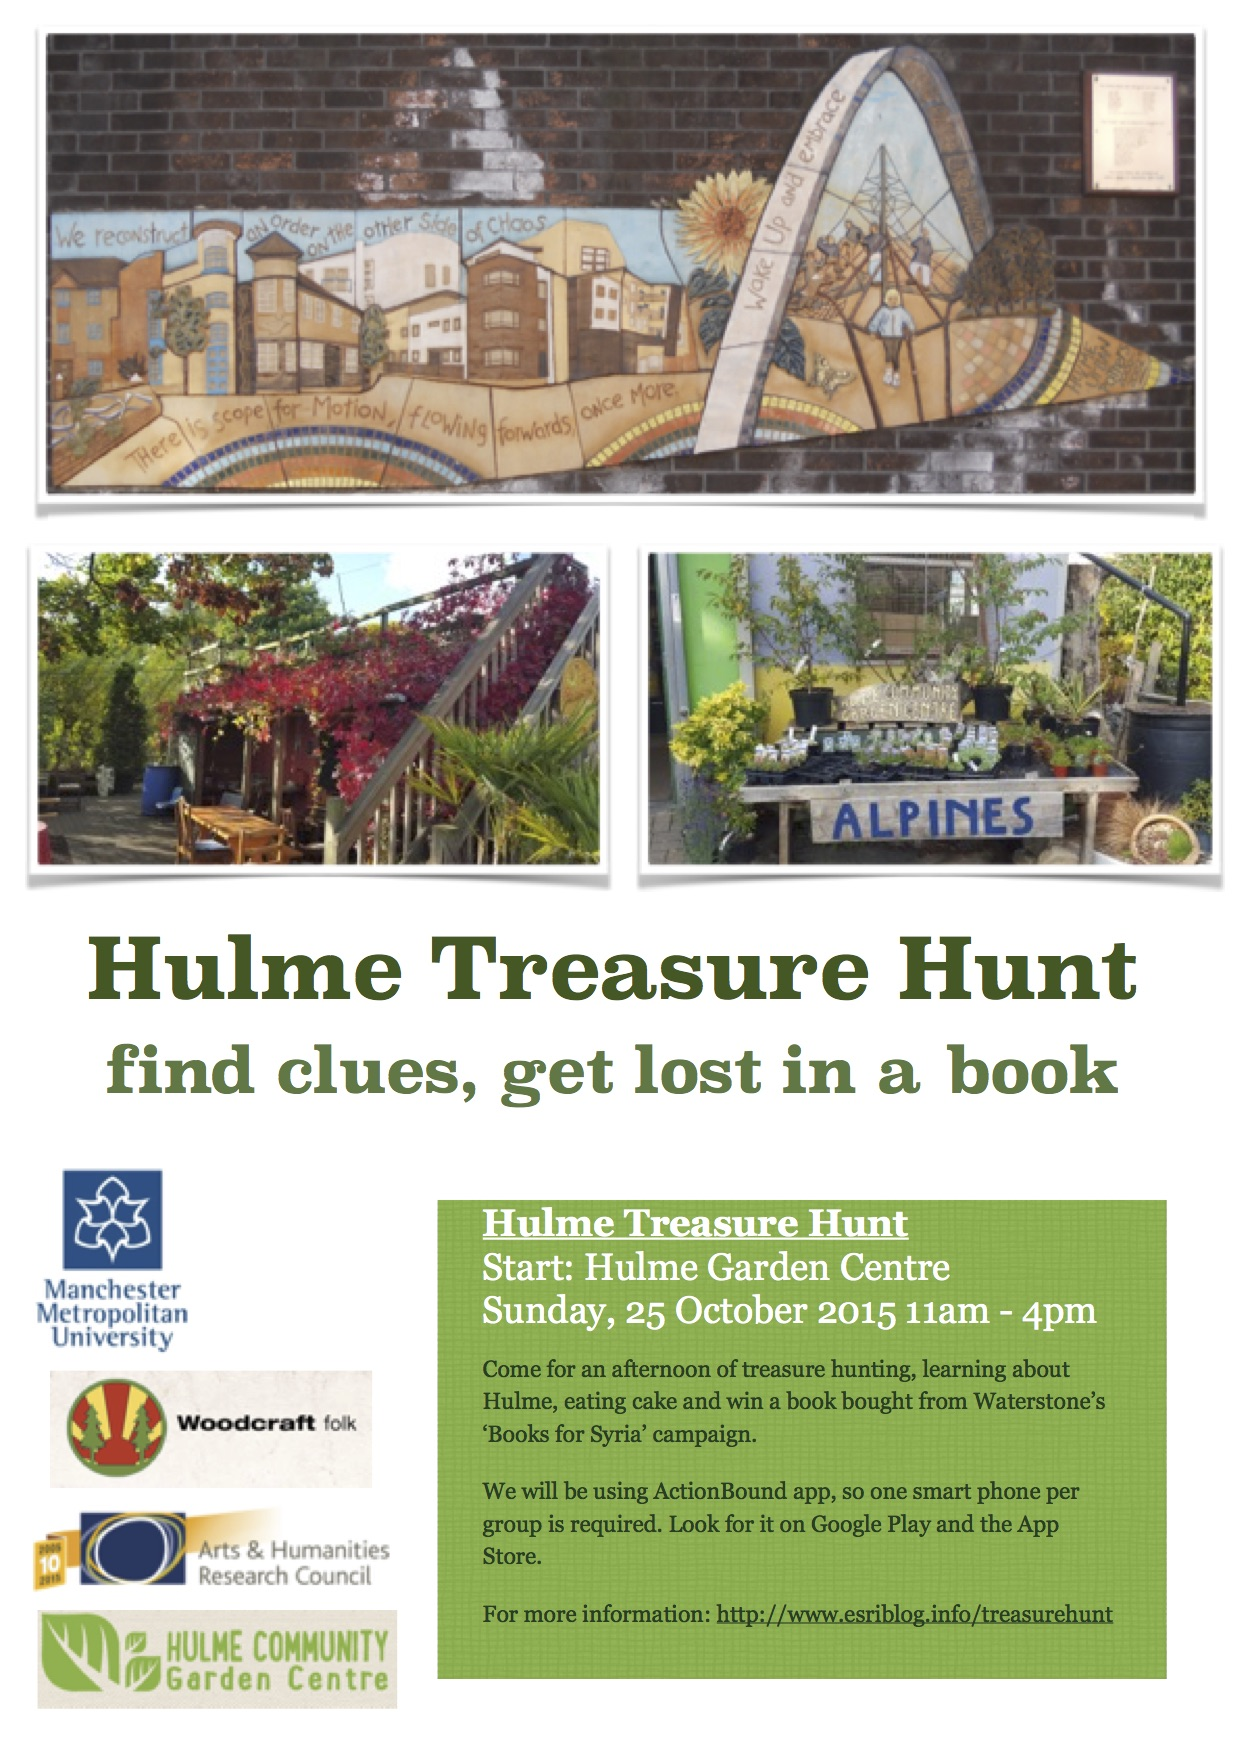 Hulme Treasure Hunt